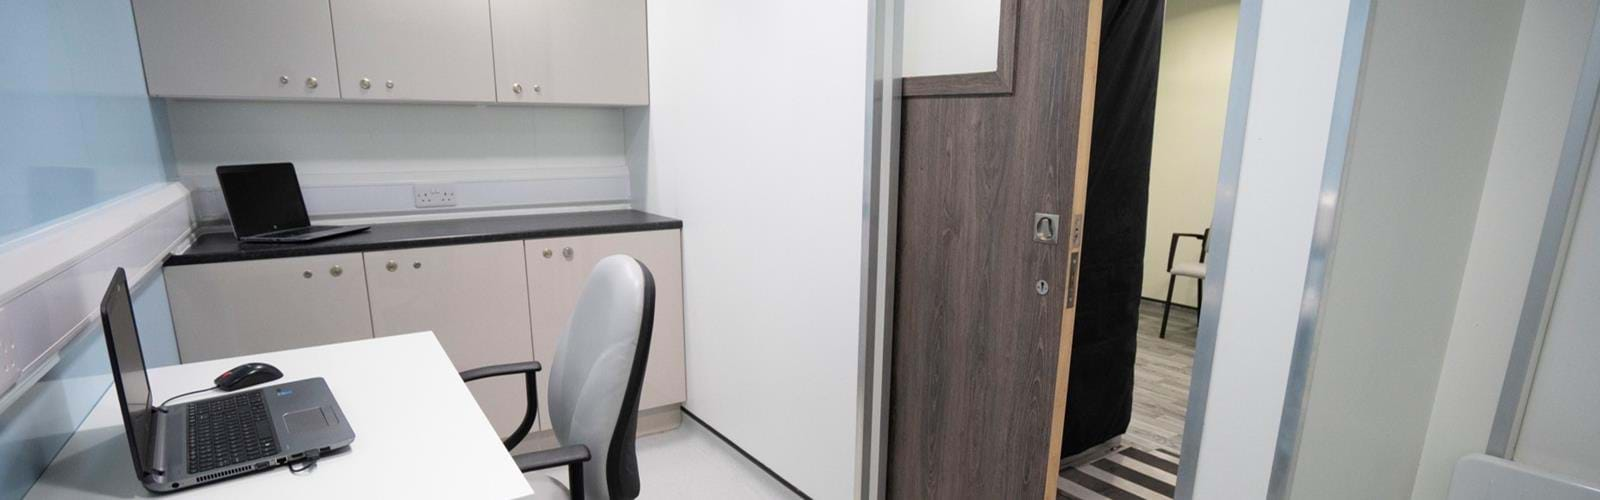 Mobile Medical Clinic consultation room interior.jpg